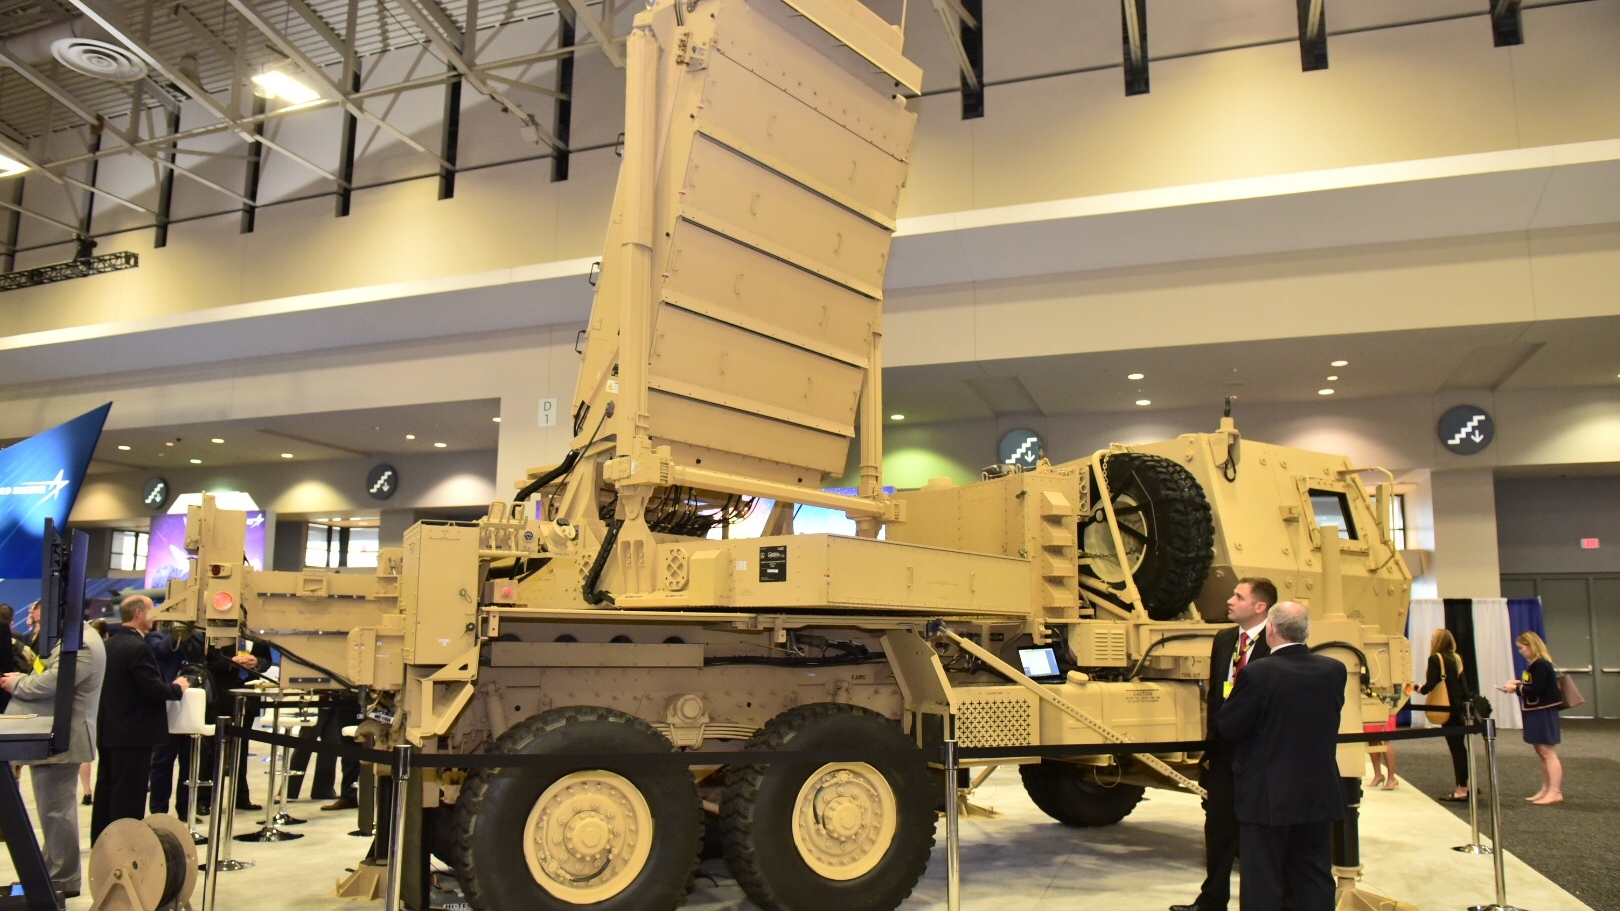 A Q53 radar system by Lockheed Martin on display at the 2018 annual meeting and exposition in Washington, DC. (Stephen Barrett/Special to Defense News & Army Times)